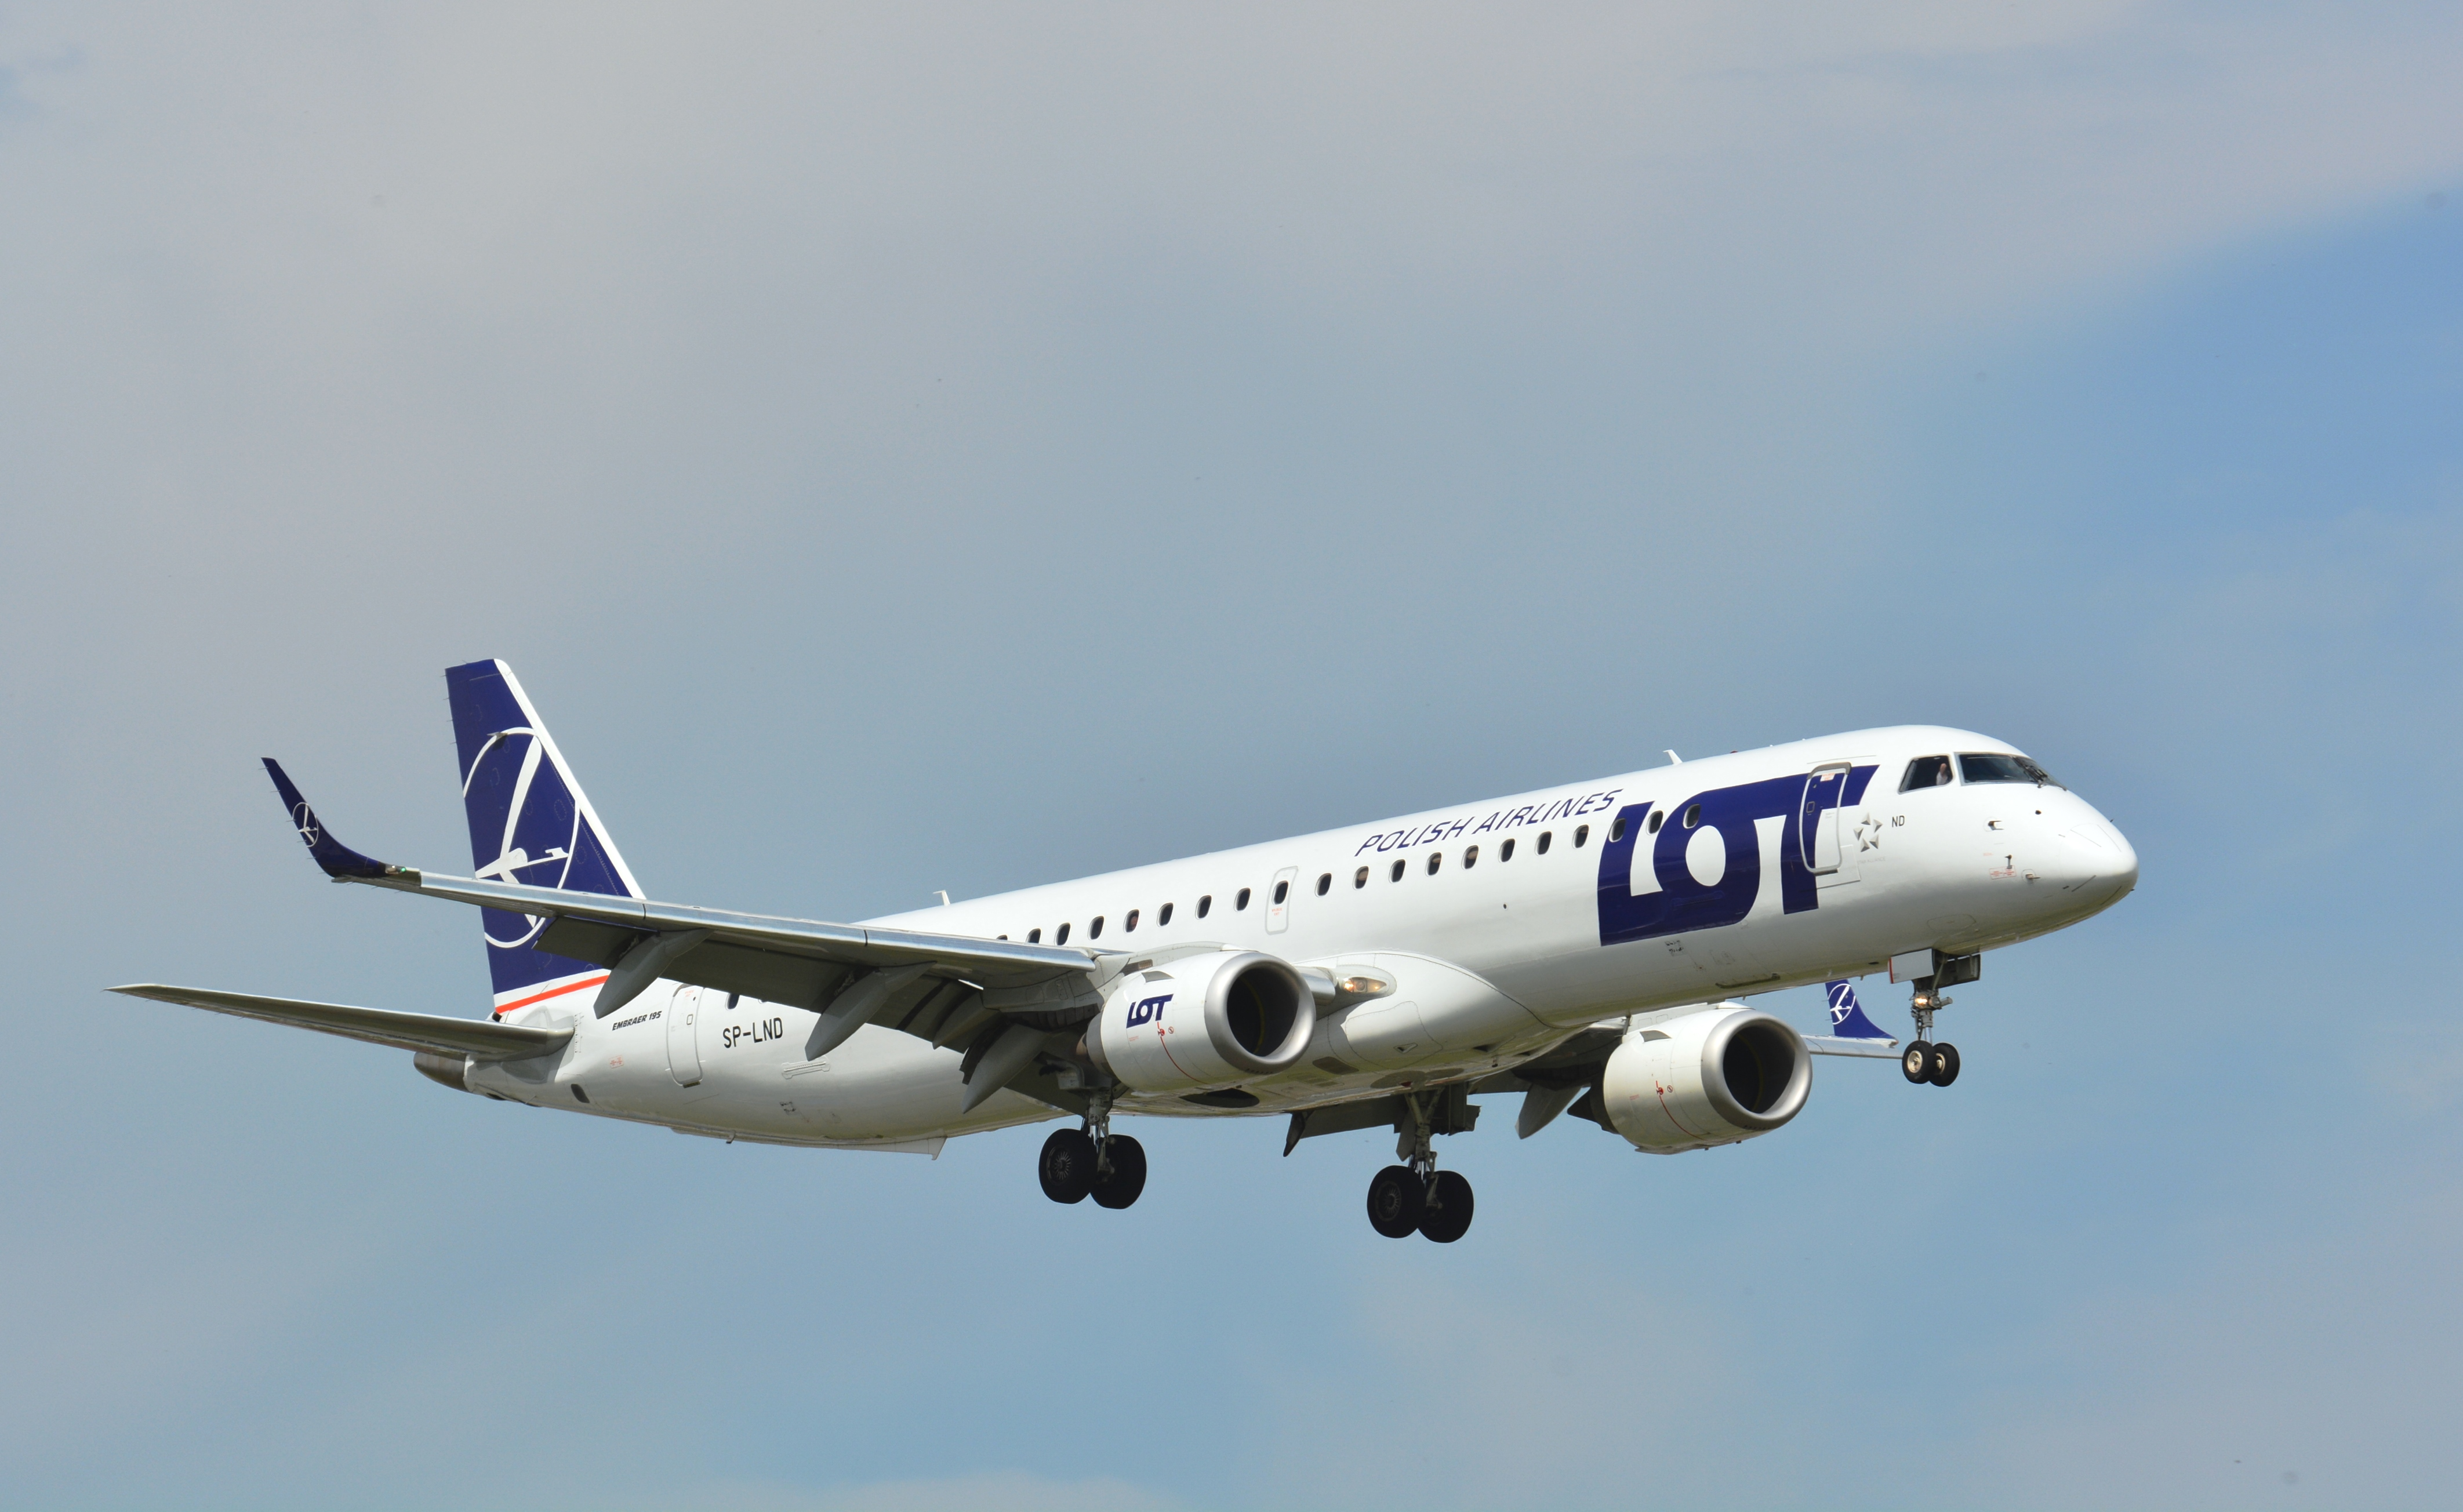 Lot Polish Airlines Will Connect Kharkiv With The World